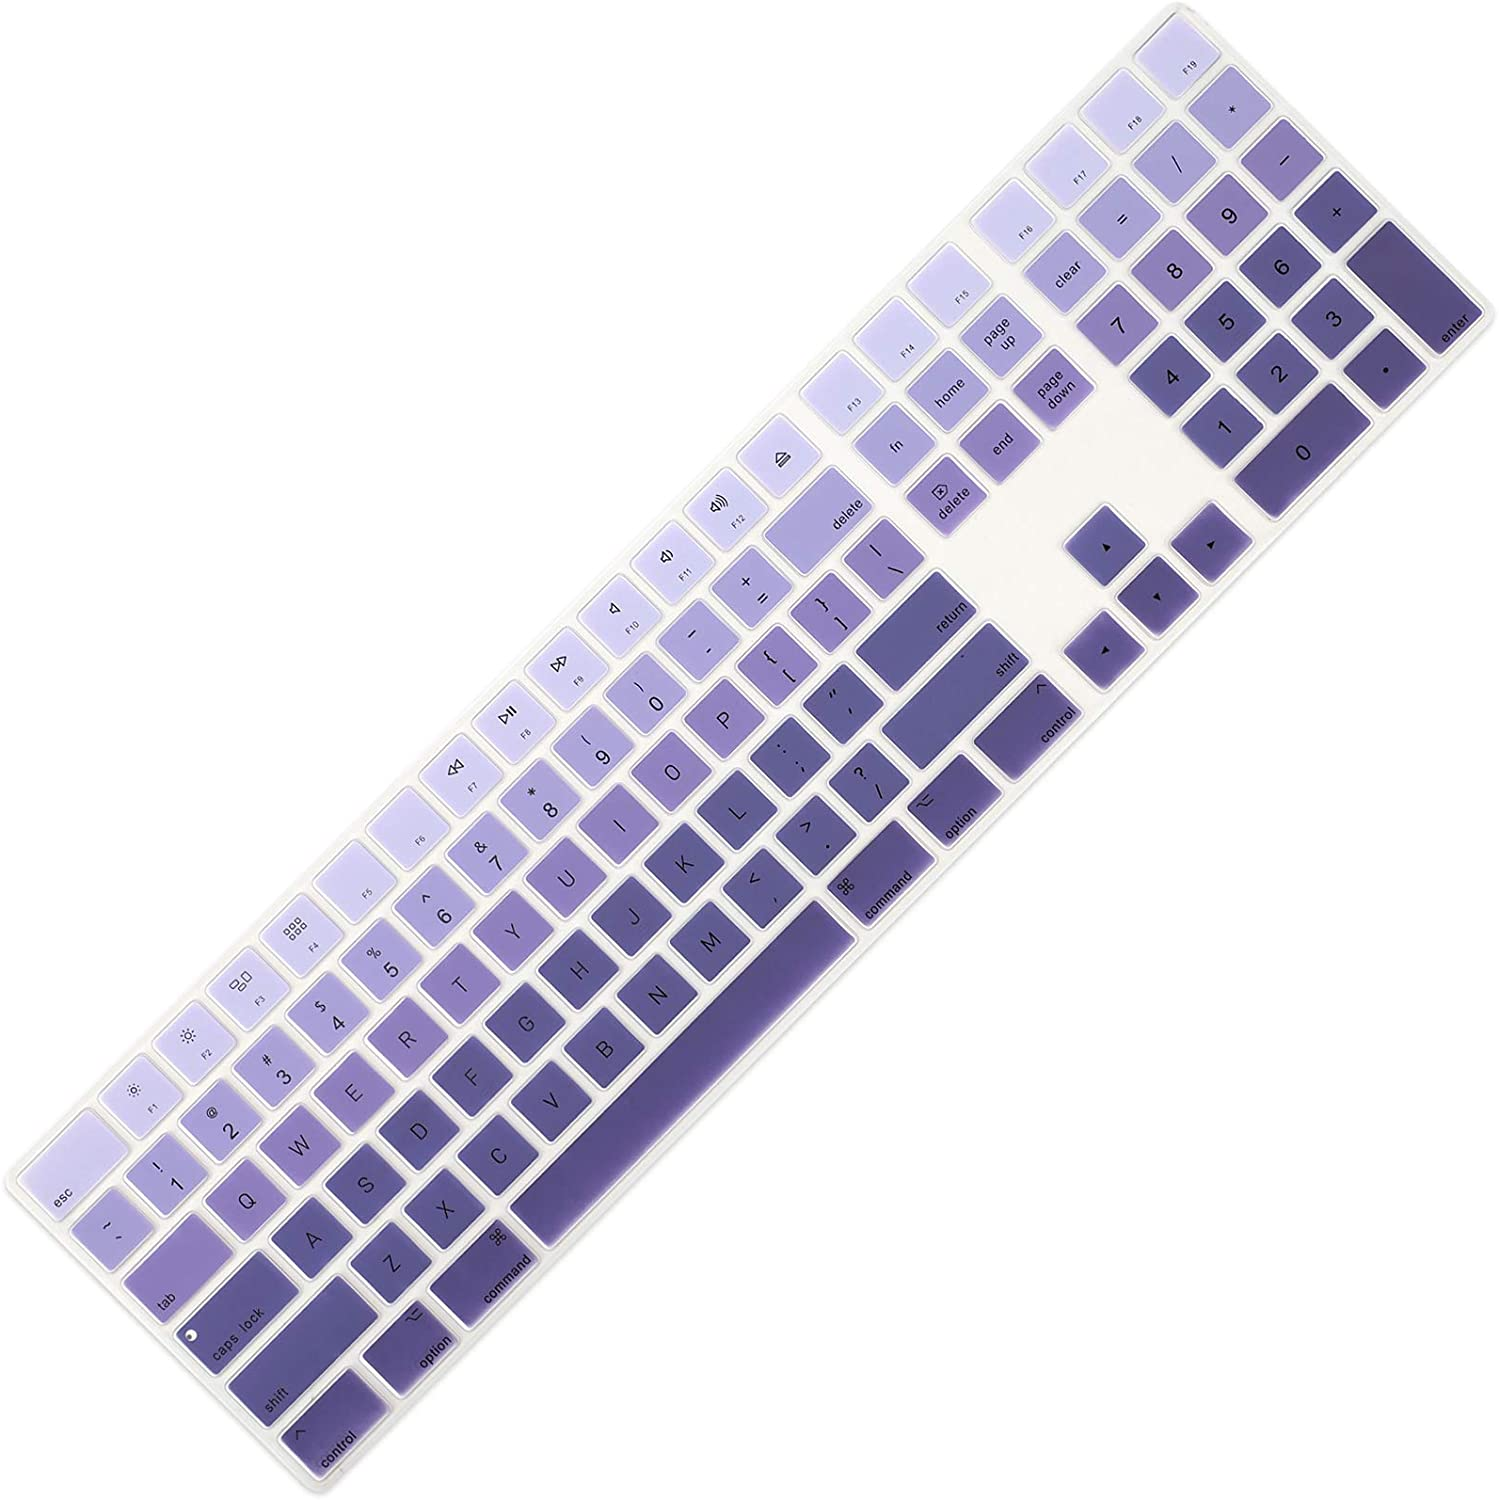 Allinside Ombre Deep Purple Cover for Apple iMac Magic Keyboard with Numeric Keypad MQ052LL/A A1843 US Layout